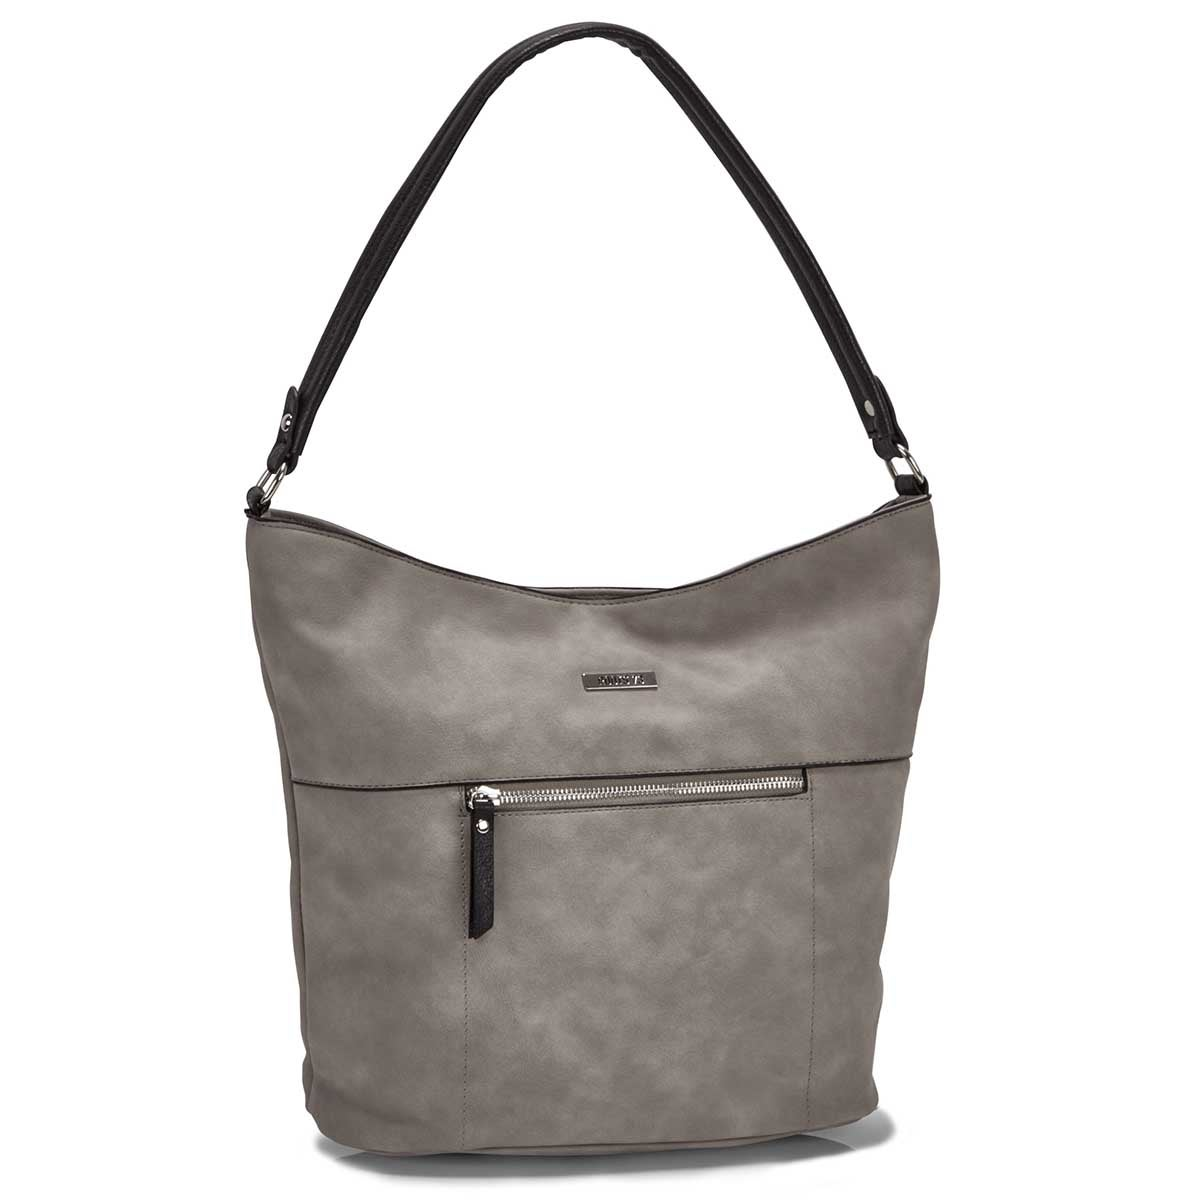 Women's R5548 grey hobo bag